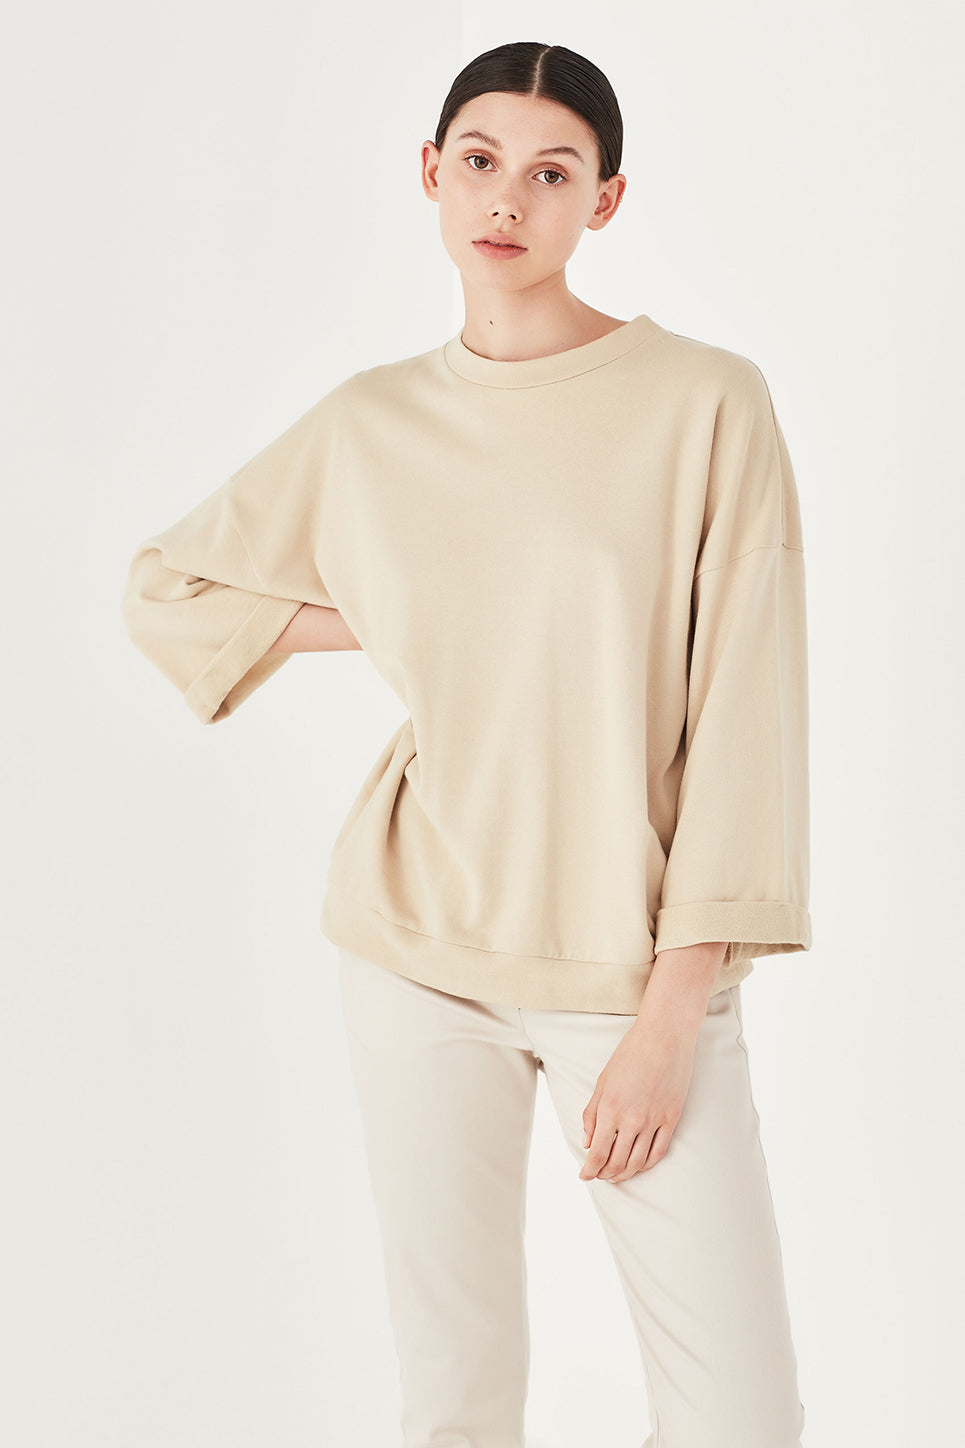 The Fabian Top in Bone